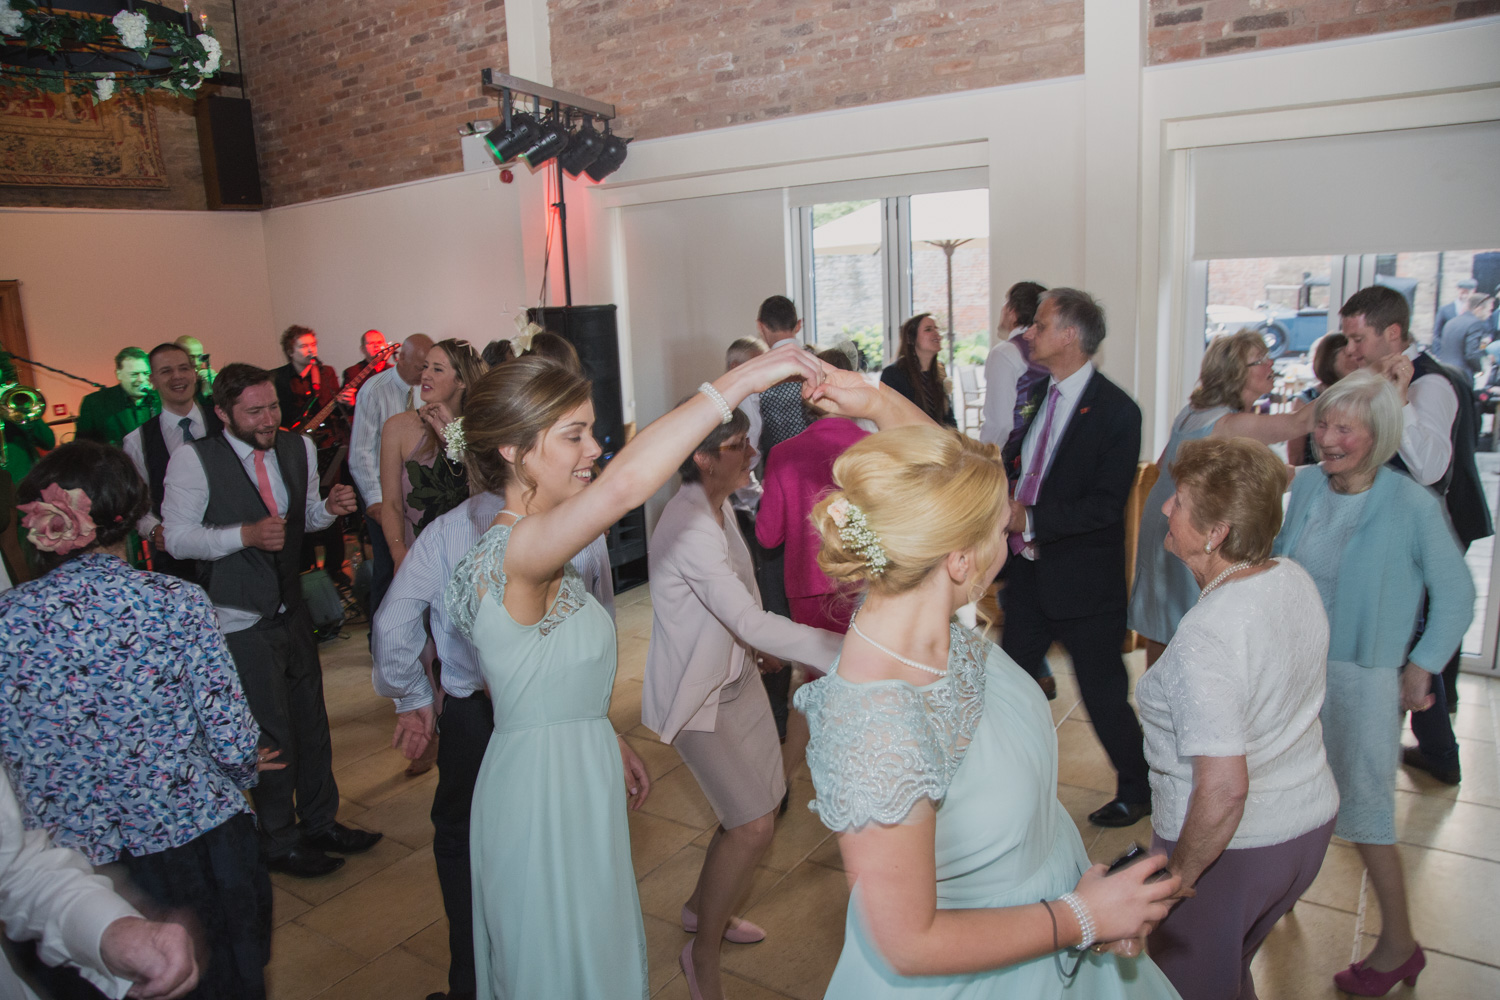 Delbury-Hall-Wedding-Photography-Shropshire-111.jpg